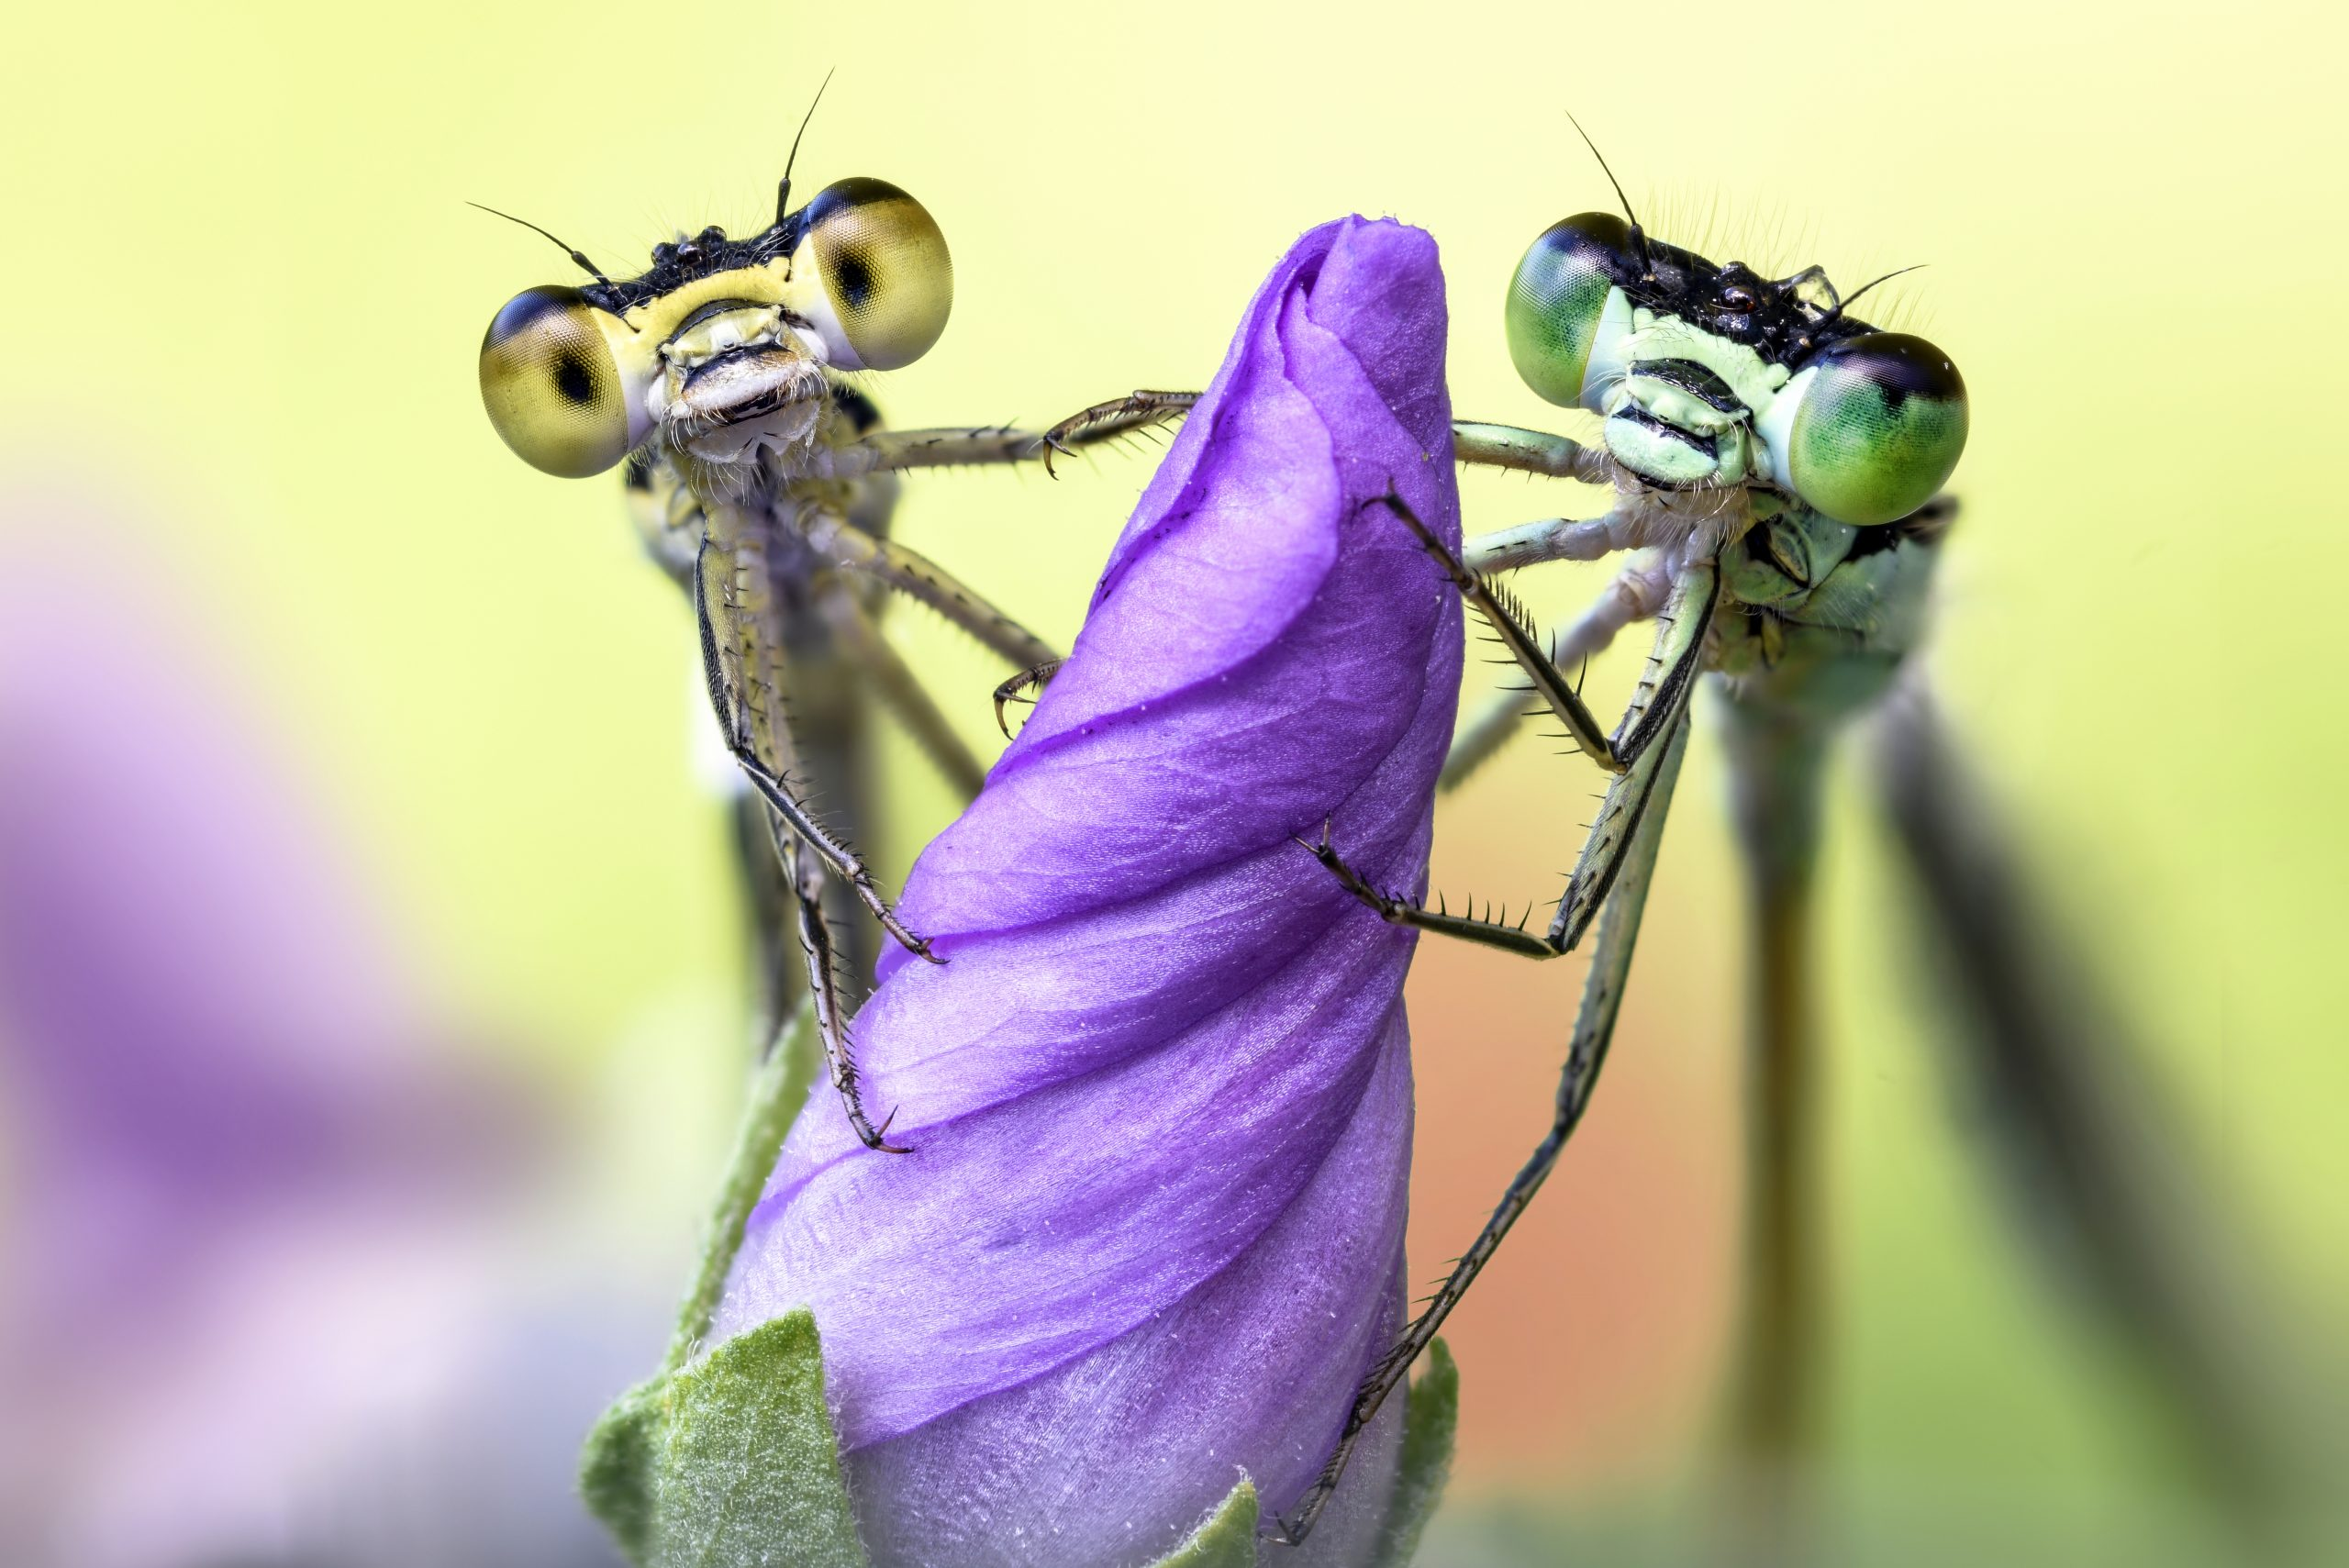 The wild world of insect photography